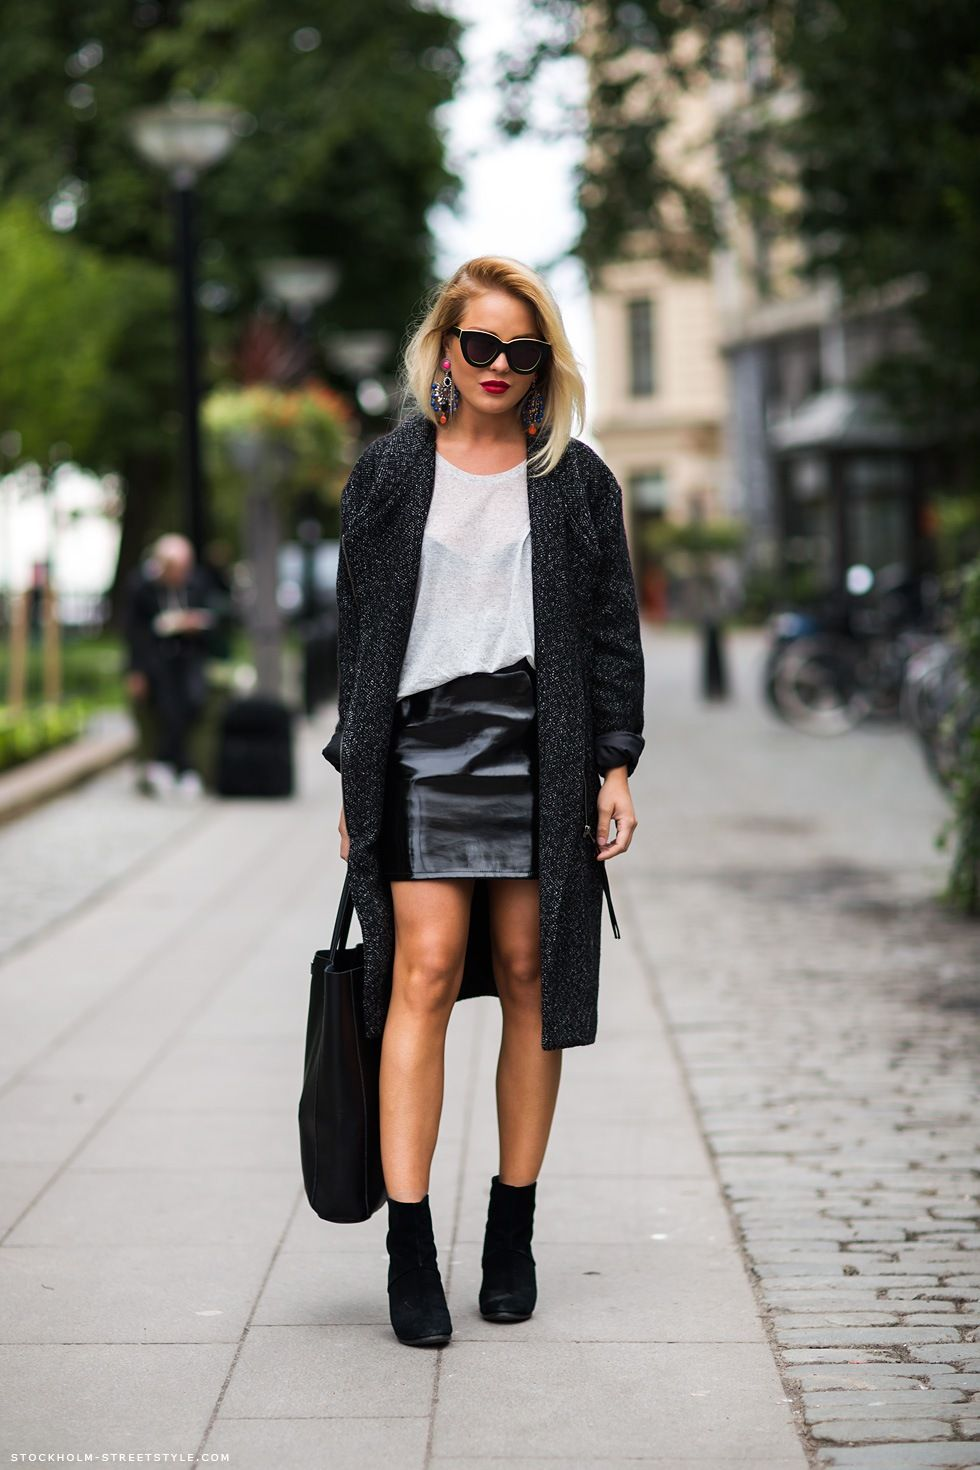 How To Style Black mini LEATHER SKIRTS | Grunge, Leather skirt and ...